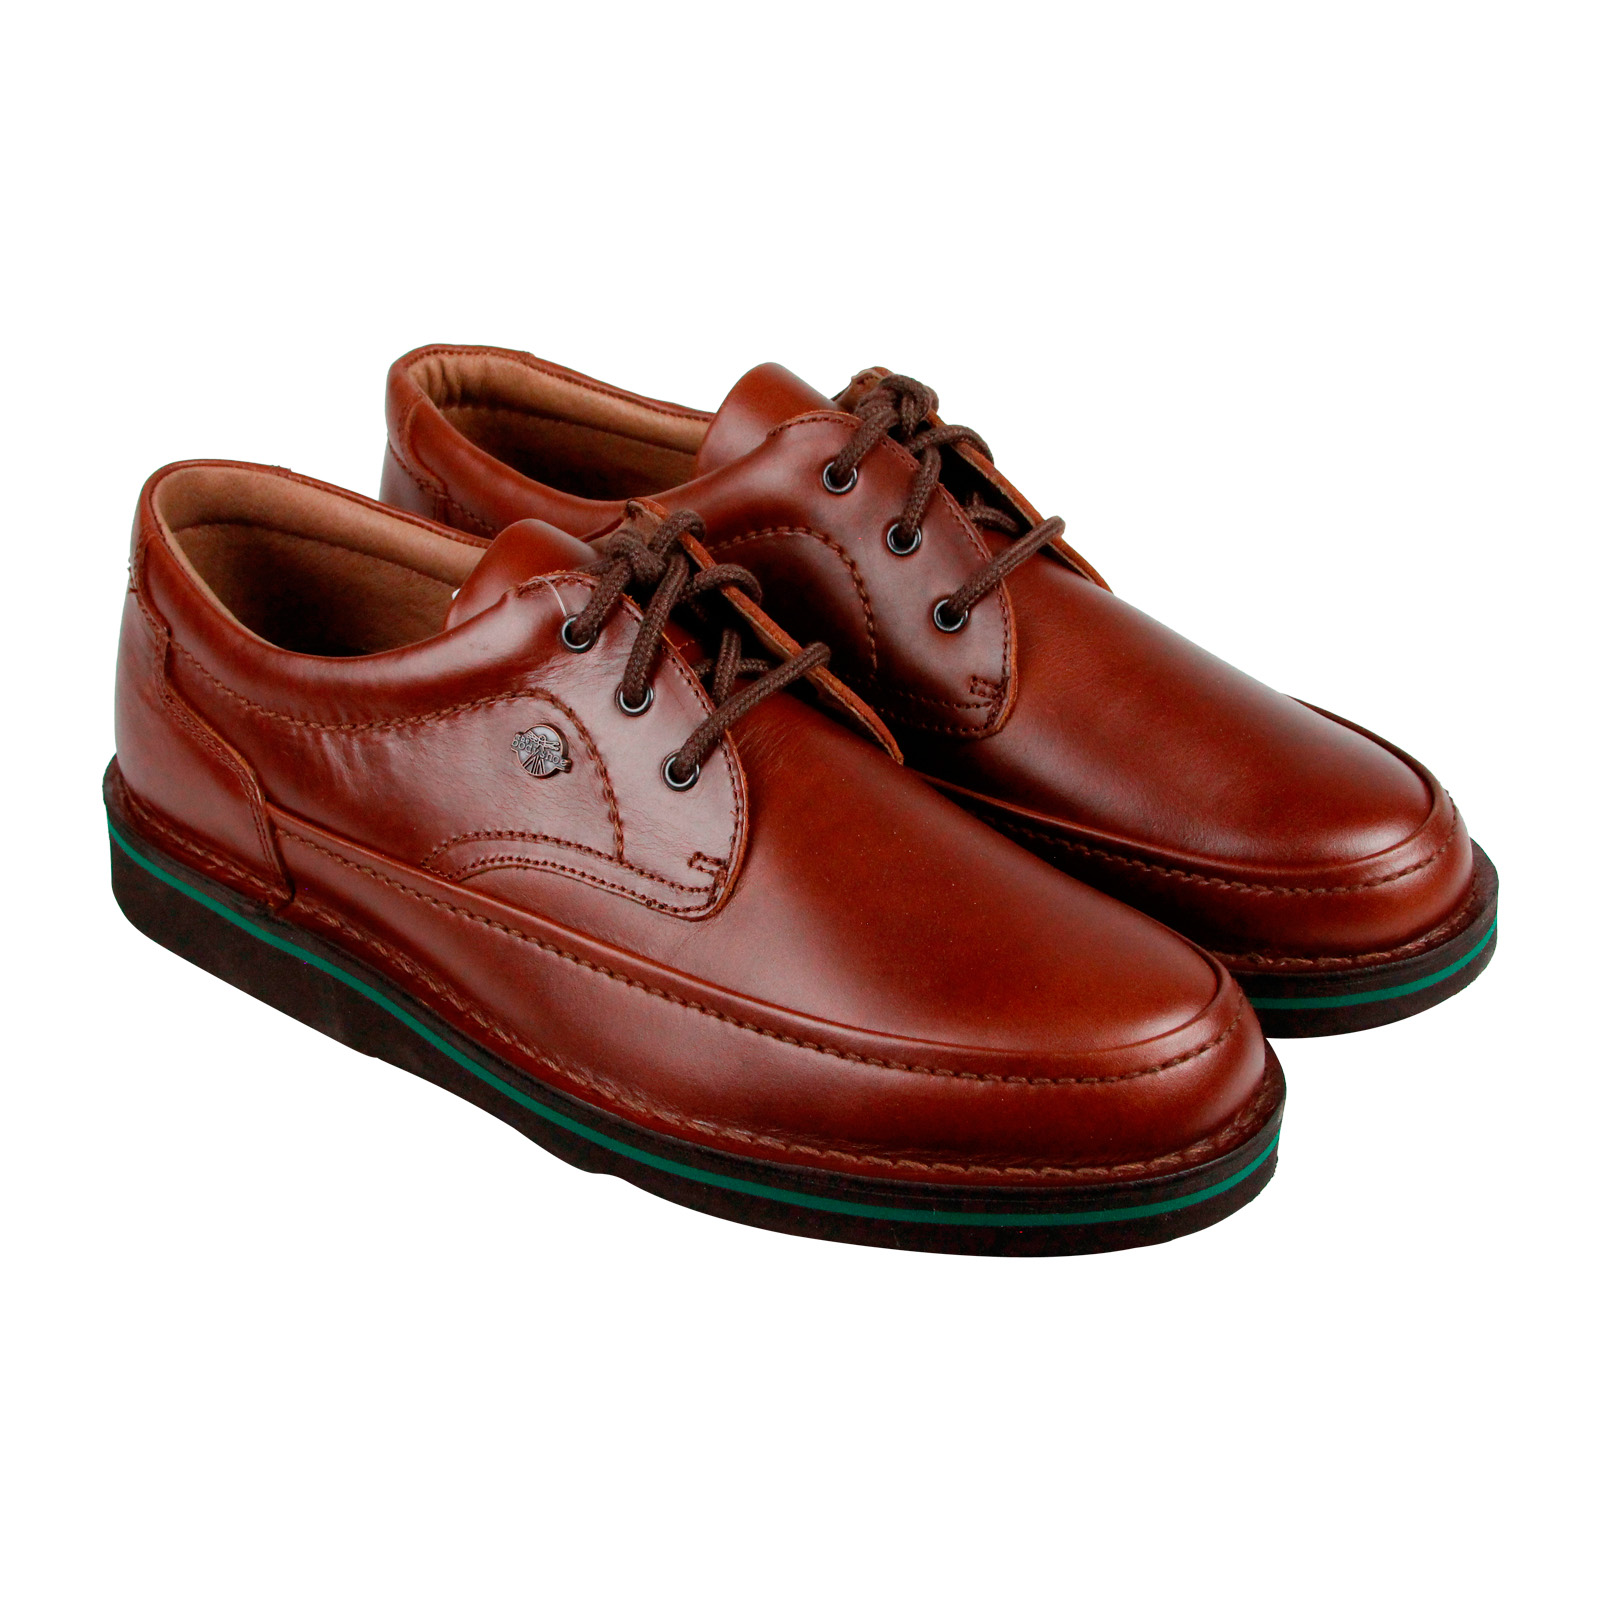 Hush Puppies Mall Walker Mens Brown Leather Casual Dress Lace Up Boat Shoes Shoes by